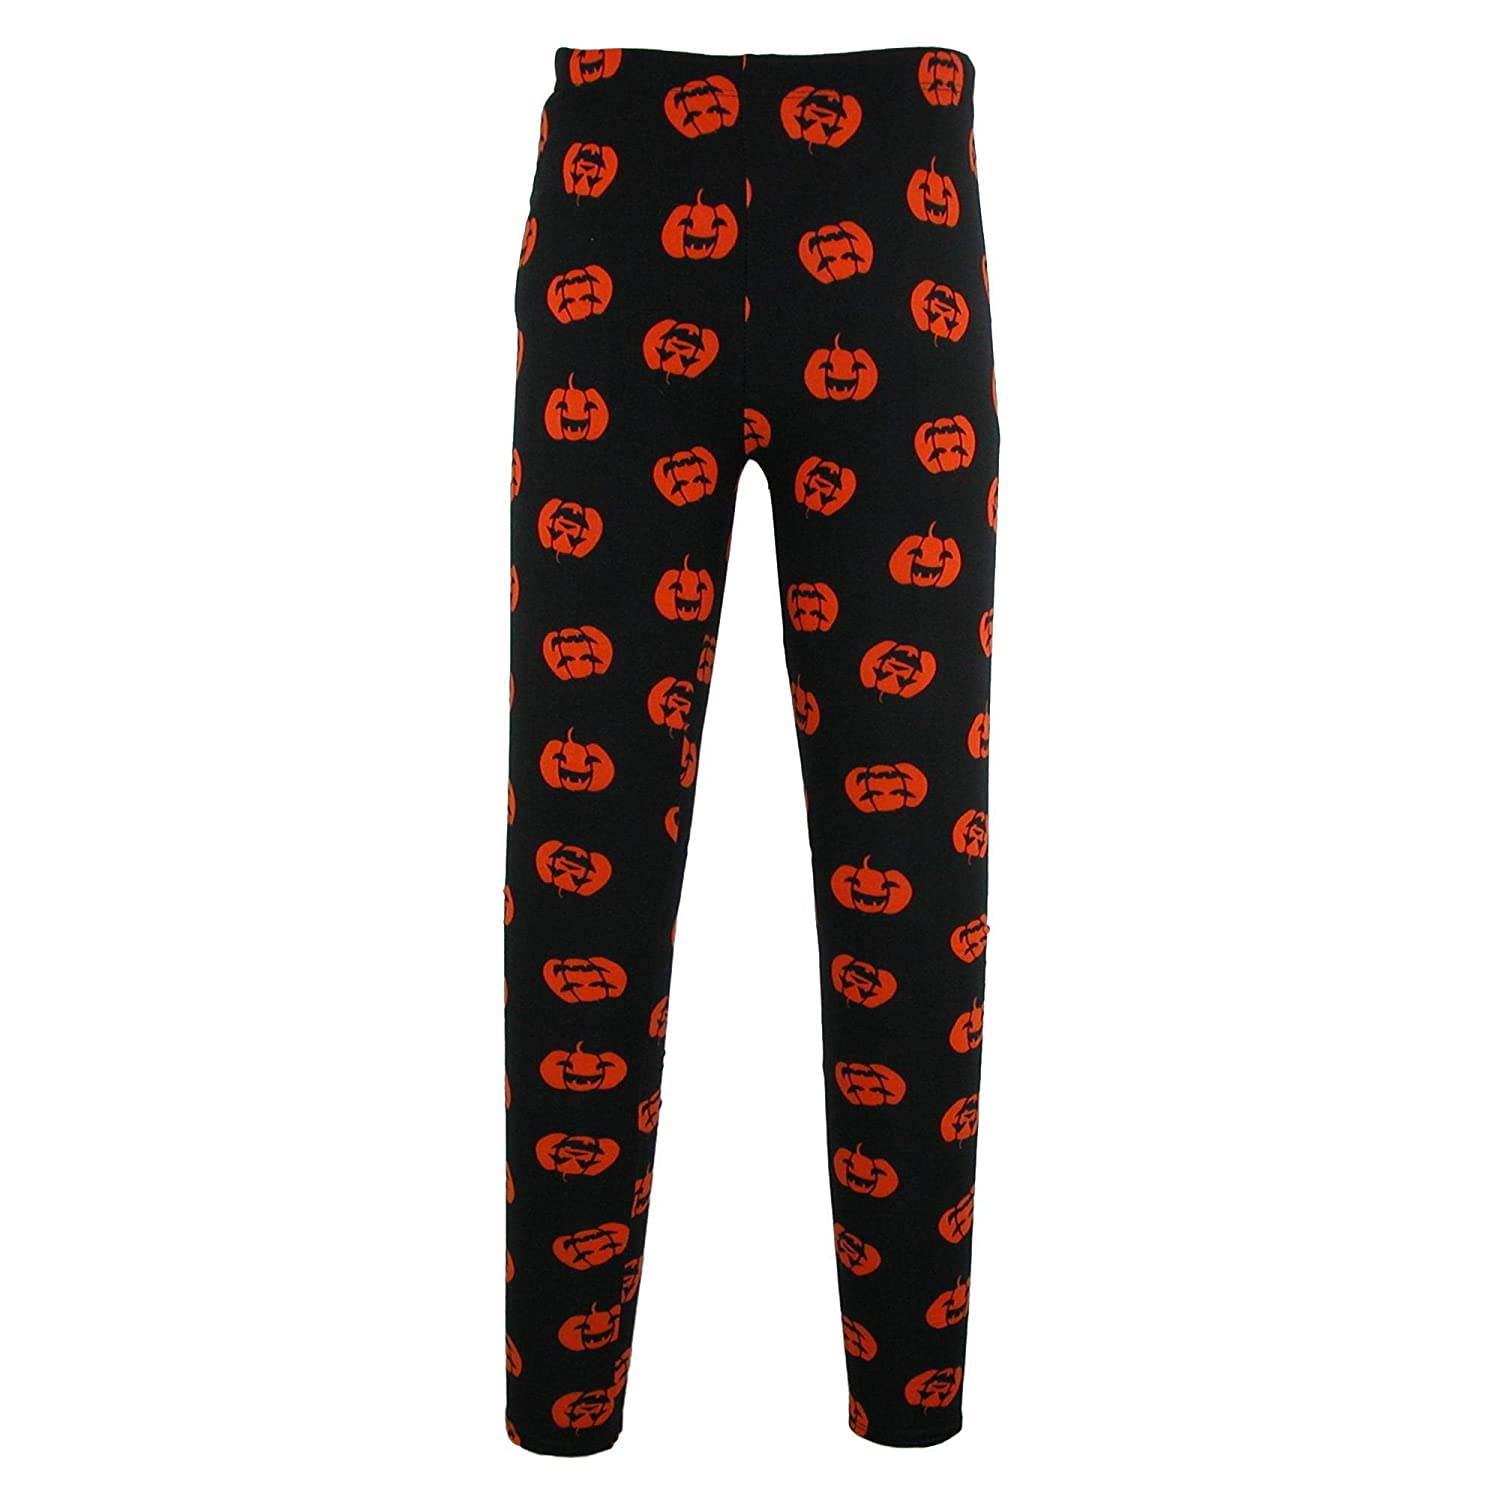 fc83bb6264f Just One Women s Pumpkin Print Halloween Leggings Black at Amazon Women s  Clothing store